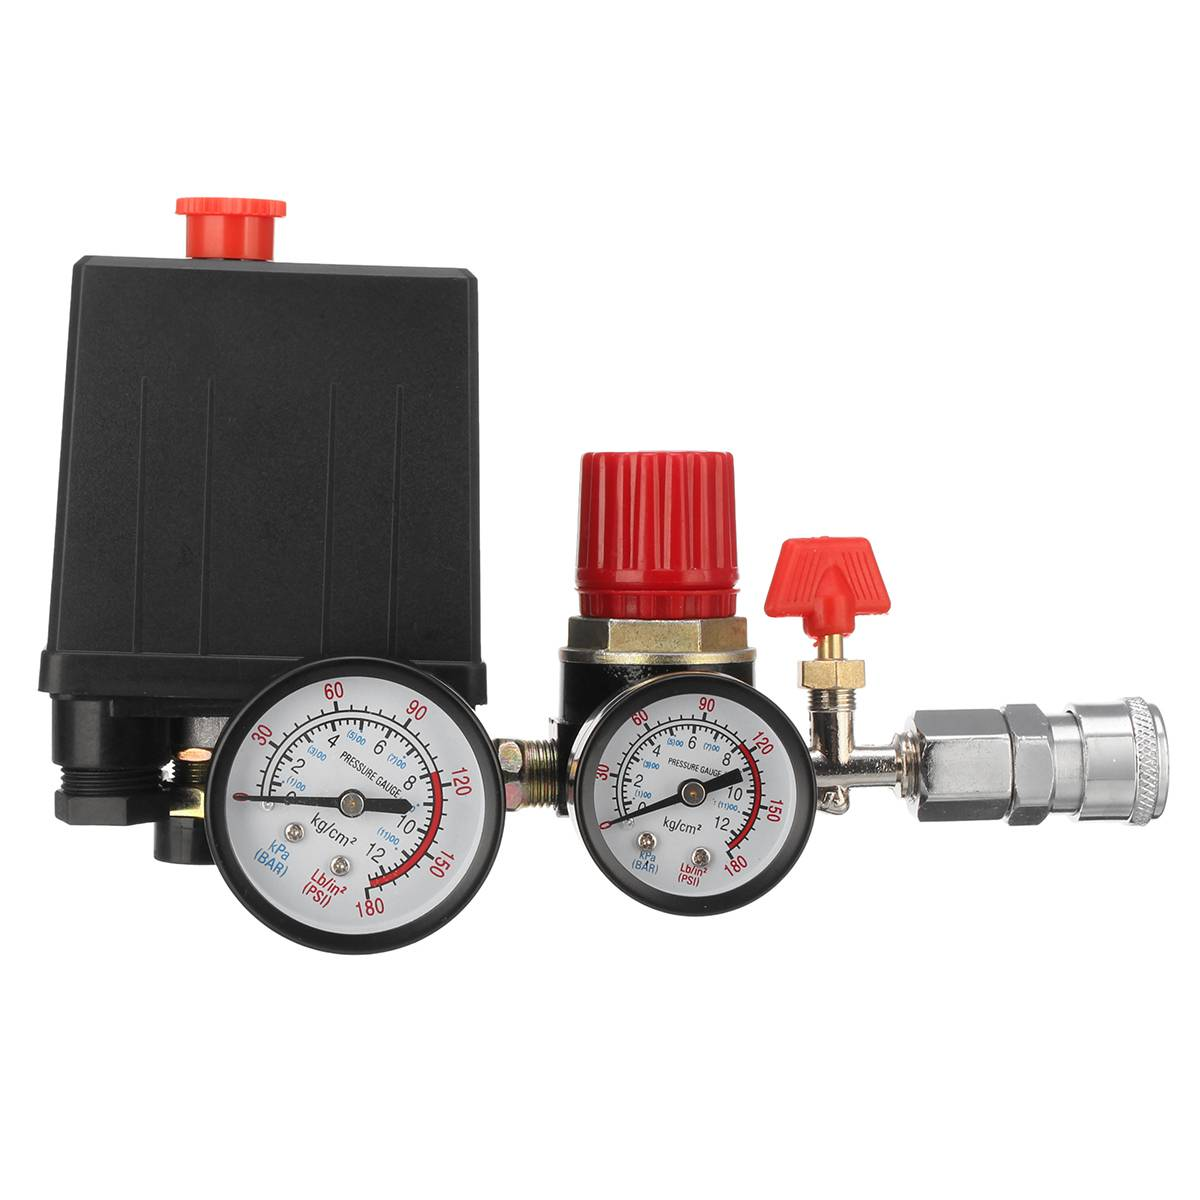 240V Air Compressor Pressure Valve Switch Control Manifold Relief AC Regulator Gauge 95-125 PSI With 2 Quick Connectors